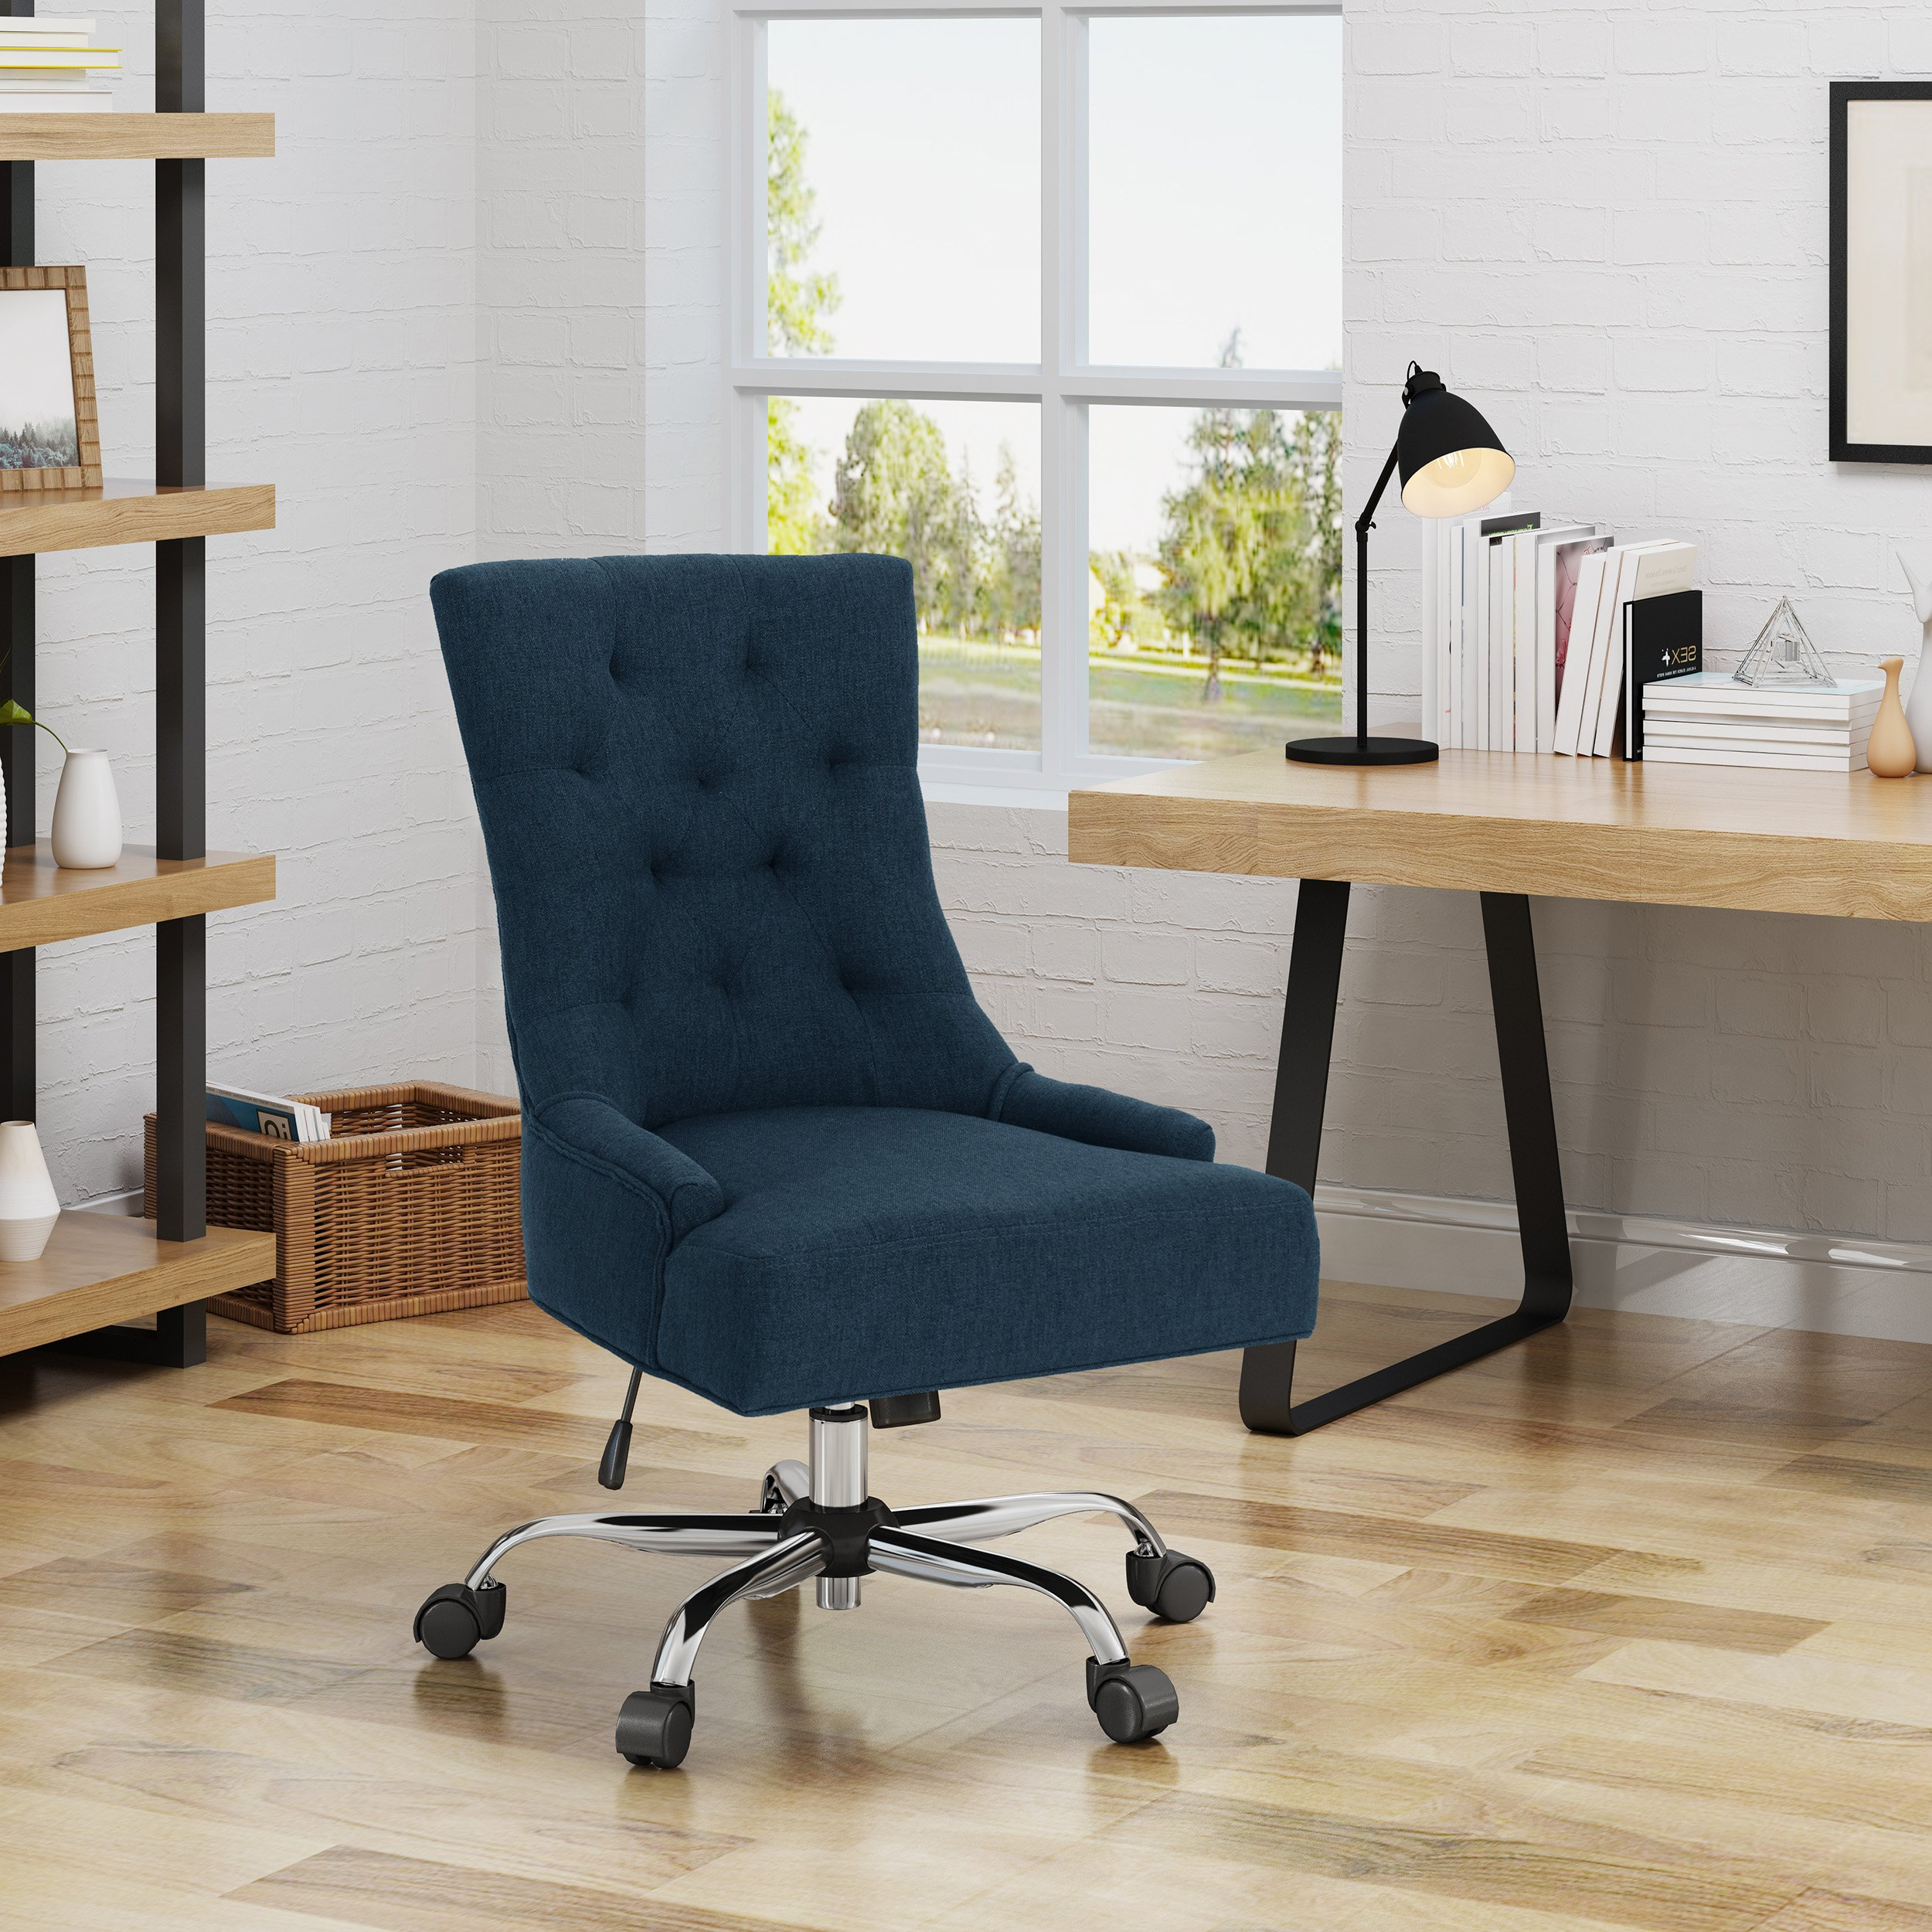 Bagnold Desk Chair for Home Office | Navy Blue | Fabric